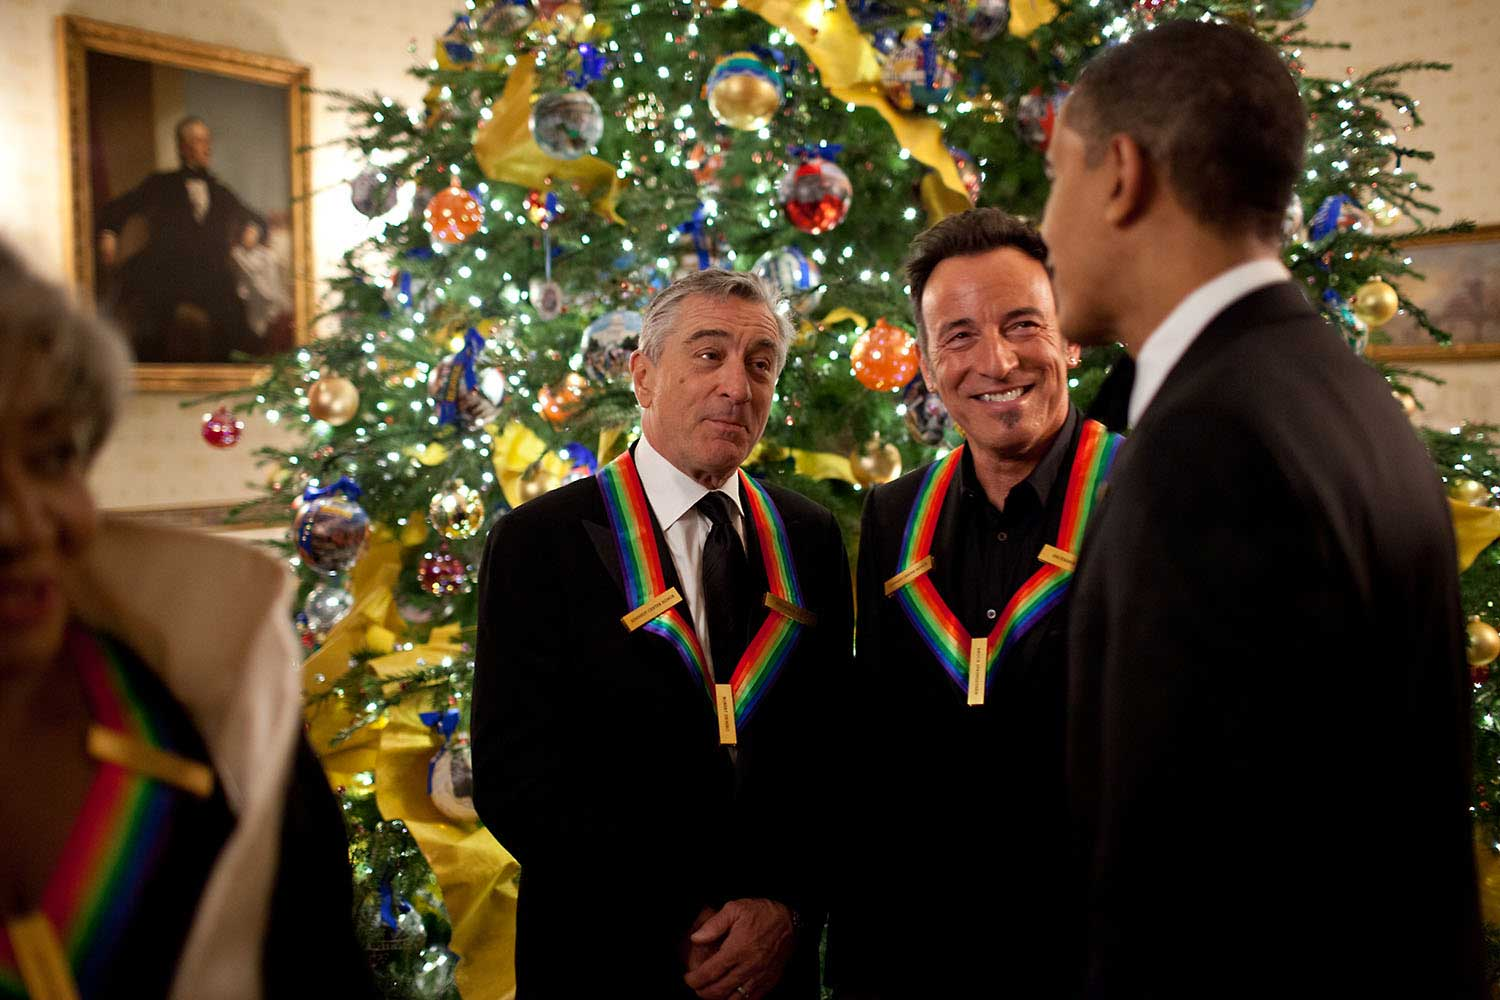 """Having seen more than 25 Bruce Springsteen concerts since 1978 and having seen just about every movie Robert DeNiro has ever made, it was a great thrill to be in their presence as the President greeted them before the Kennedy Center Honors at the White House, Dec. 6, 2009."""